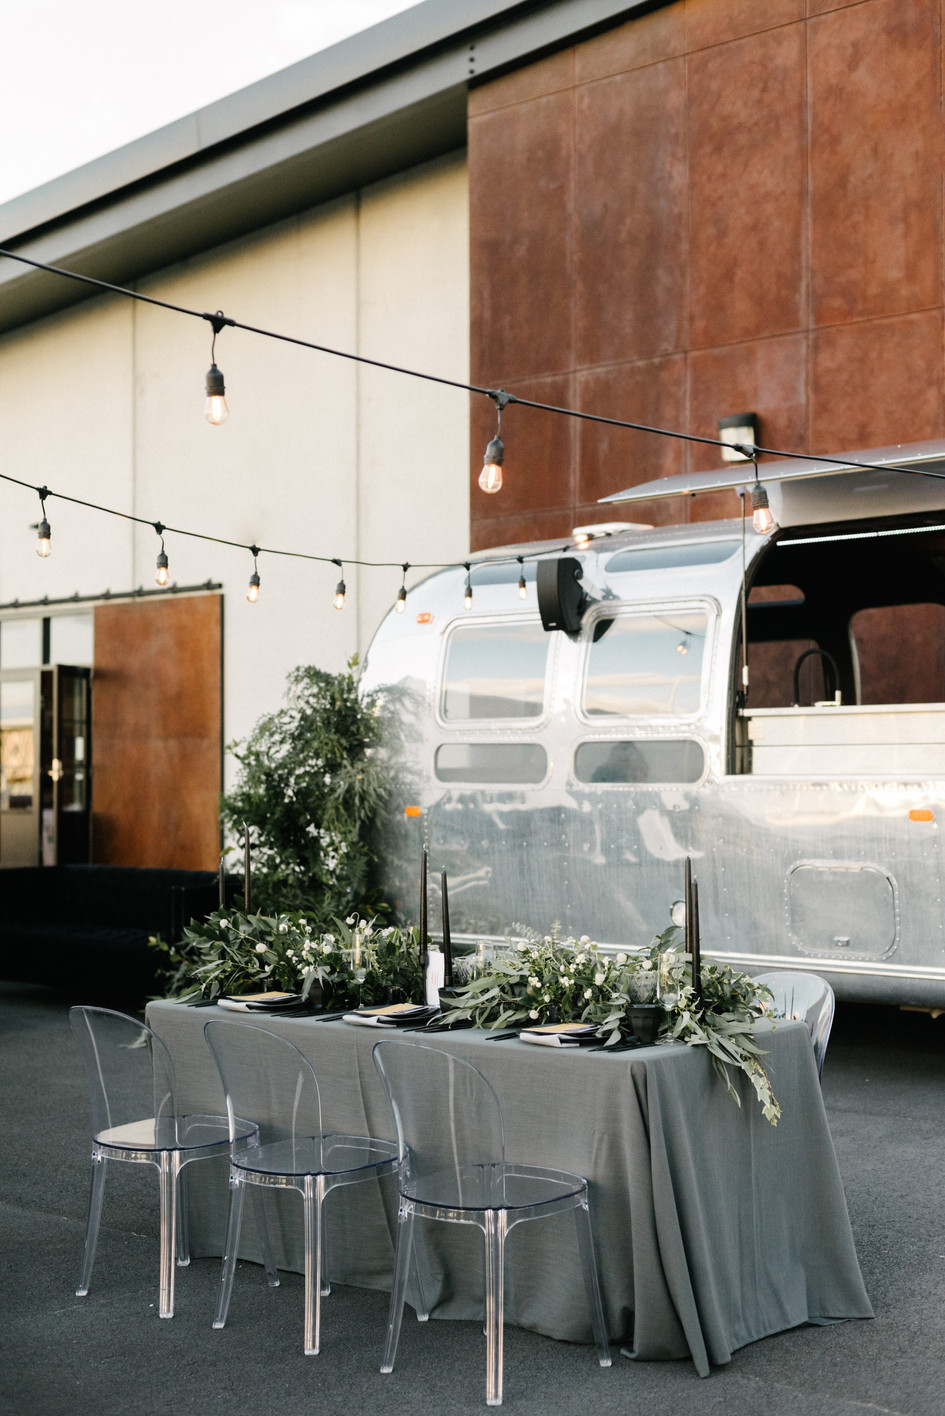 airstream_wedding_bar.jpg